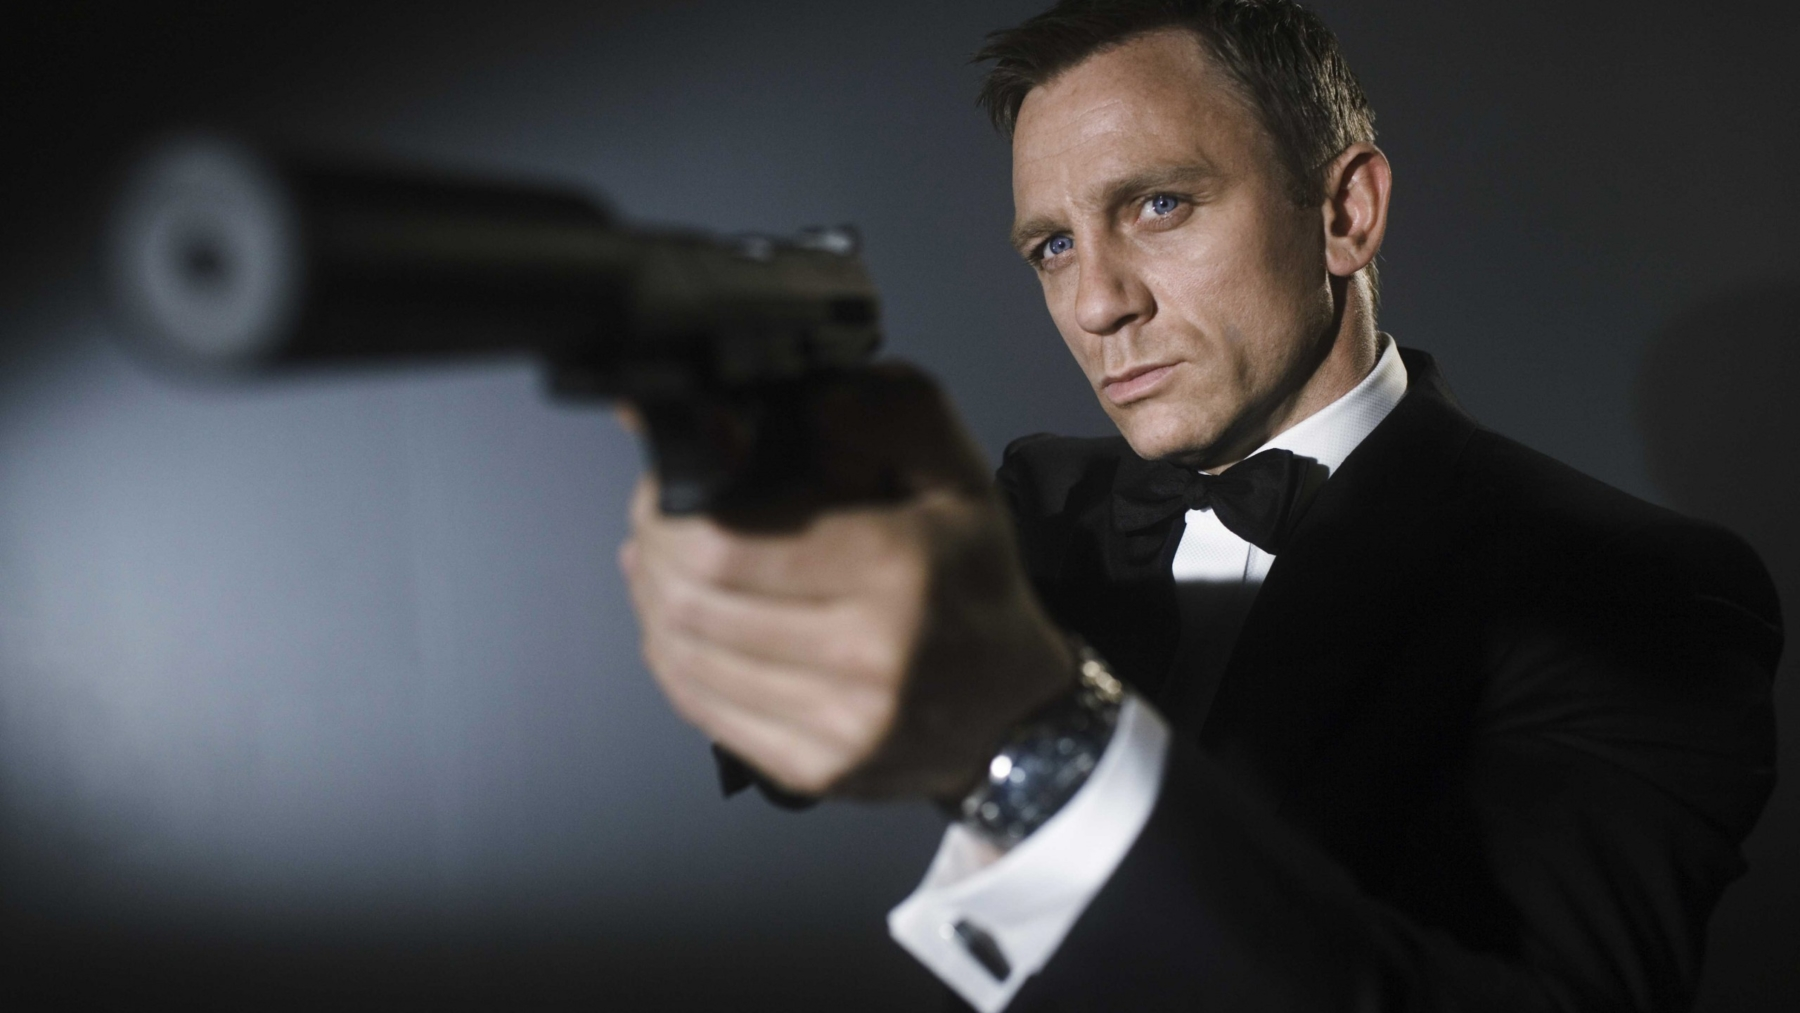 A Complete List of All the James Bond Watches